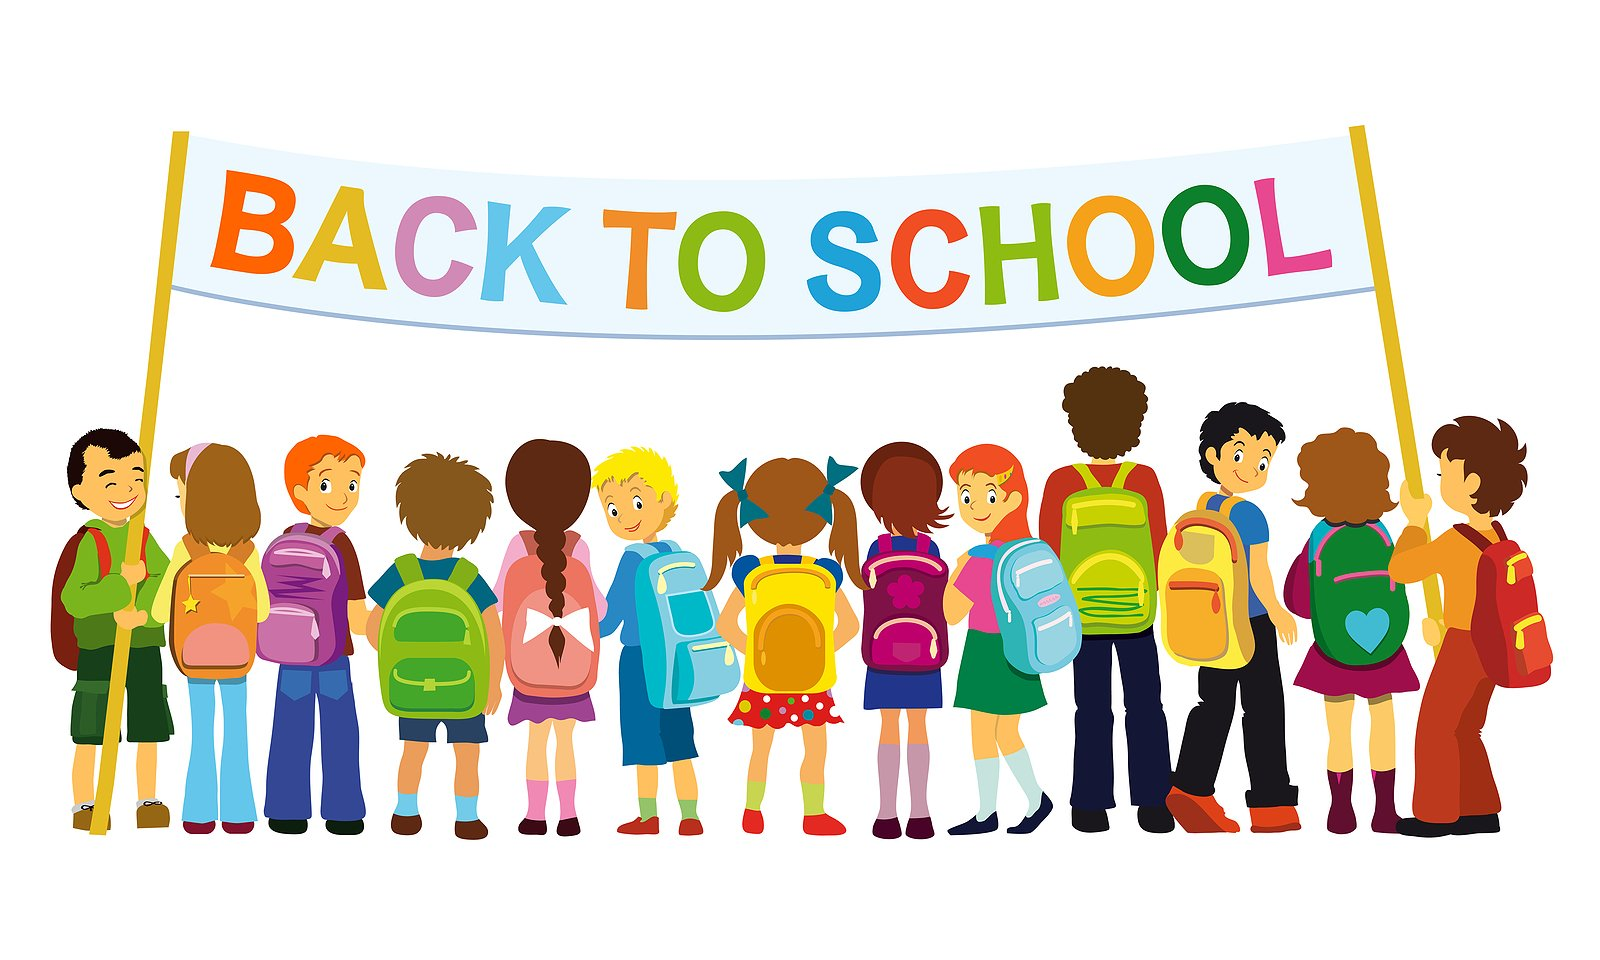 Back To School 2013 on Parent Involvement In S Statistics